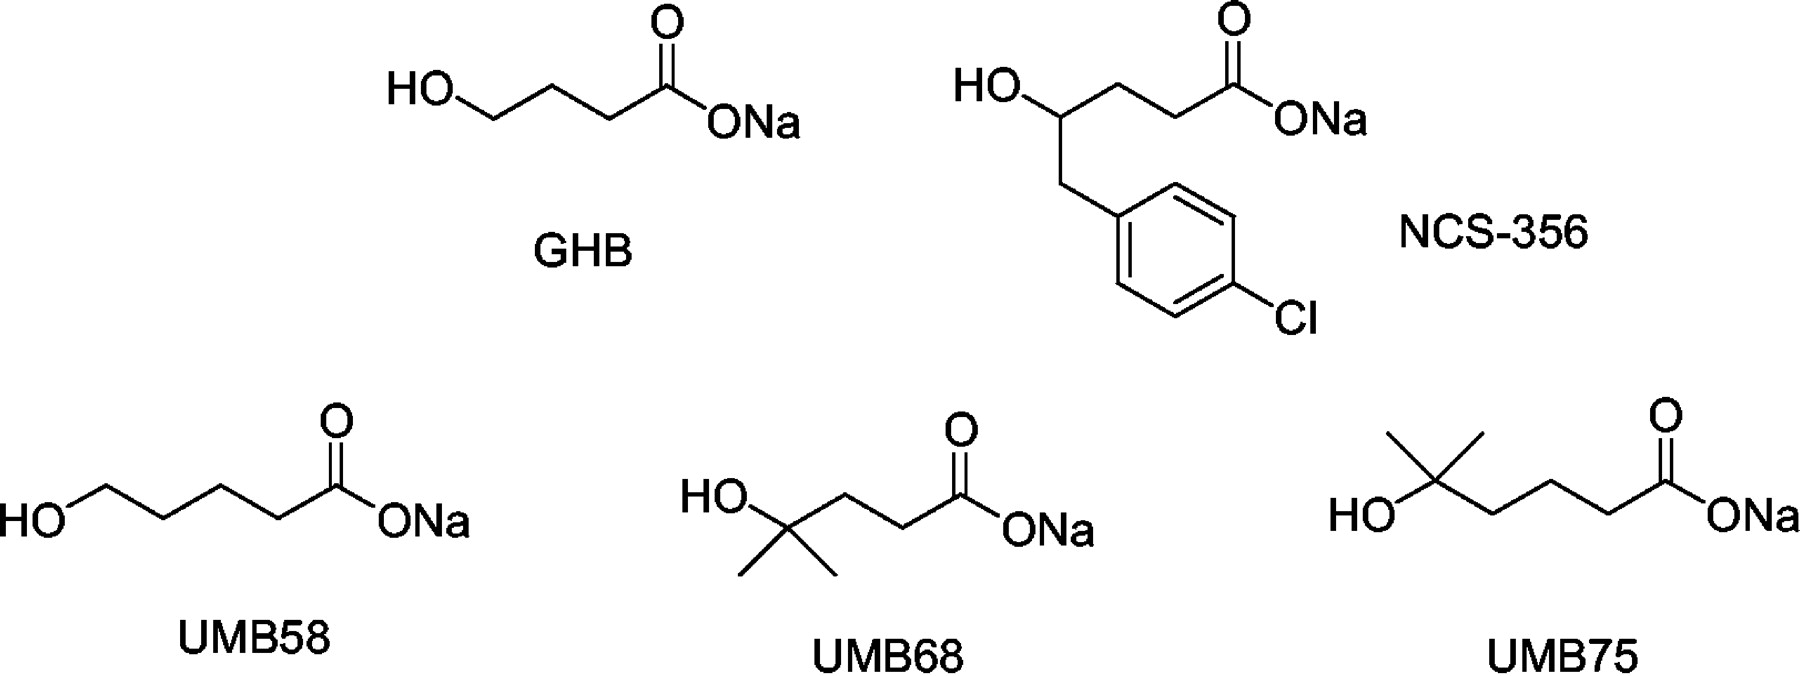 an introduction to the issue of gamma hydroxy butyric acid ghb Single drug administration: issues in methodology and drug monitoring introduction gamma-hydroxybutyric acid (ghb, ''liquid ecstasy.